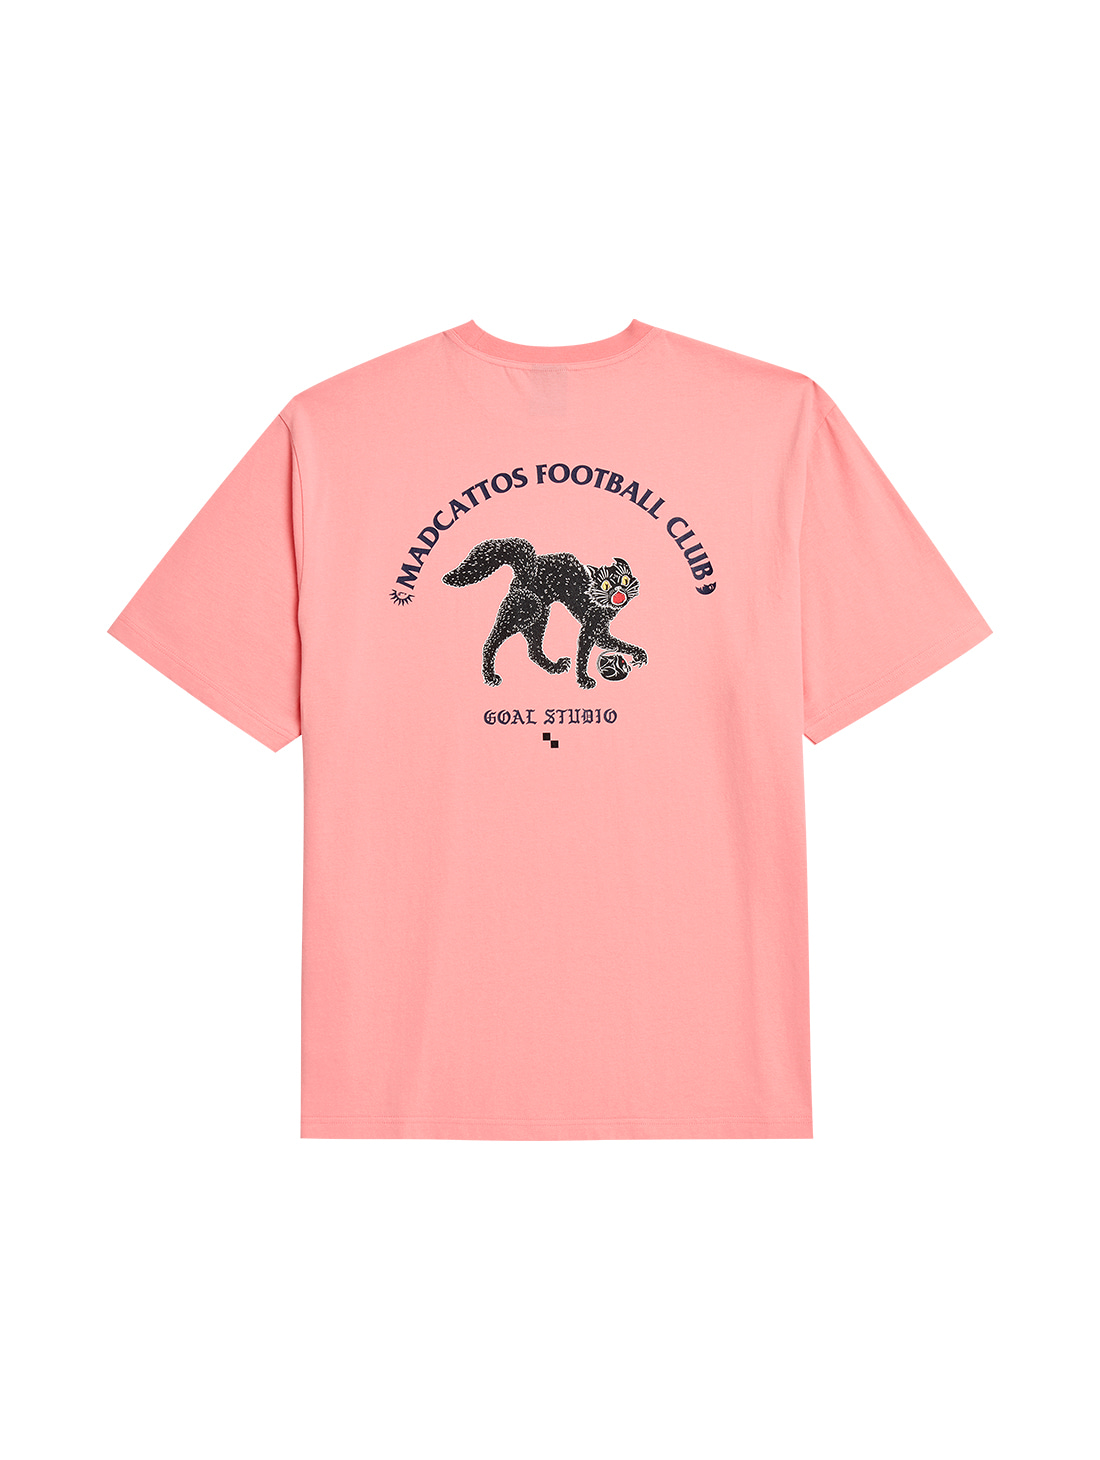 GOALSTUDIO MC GRAPHIC TEE - PINK